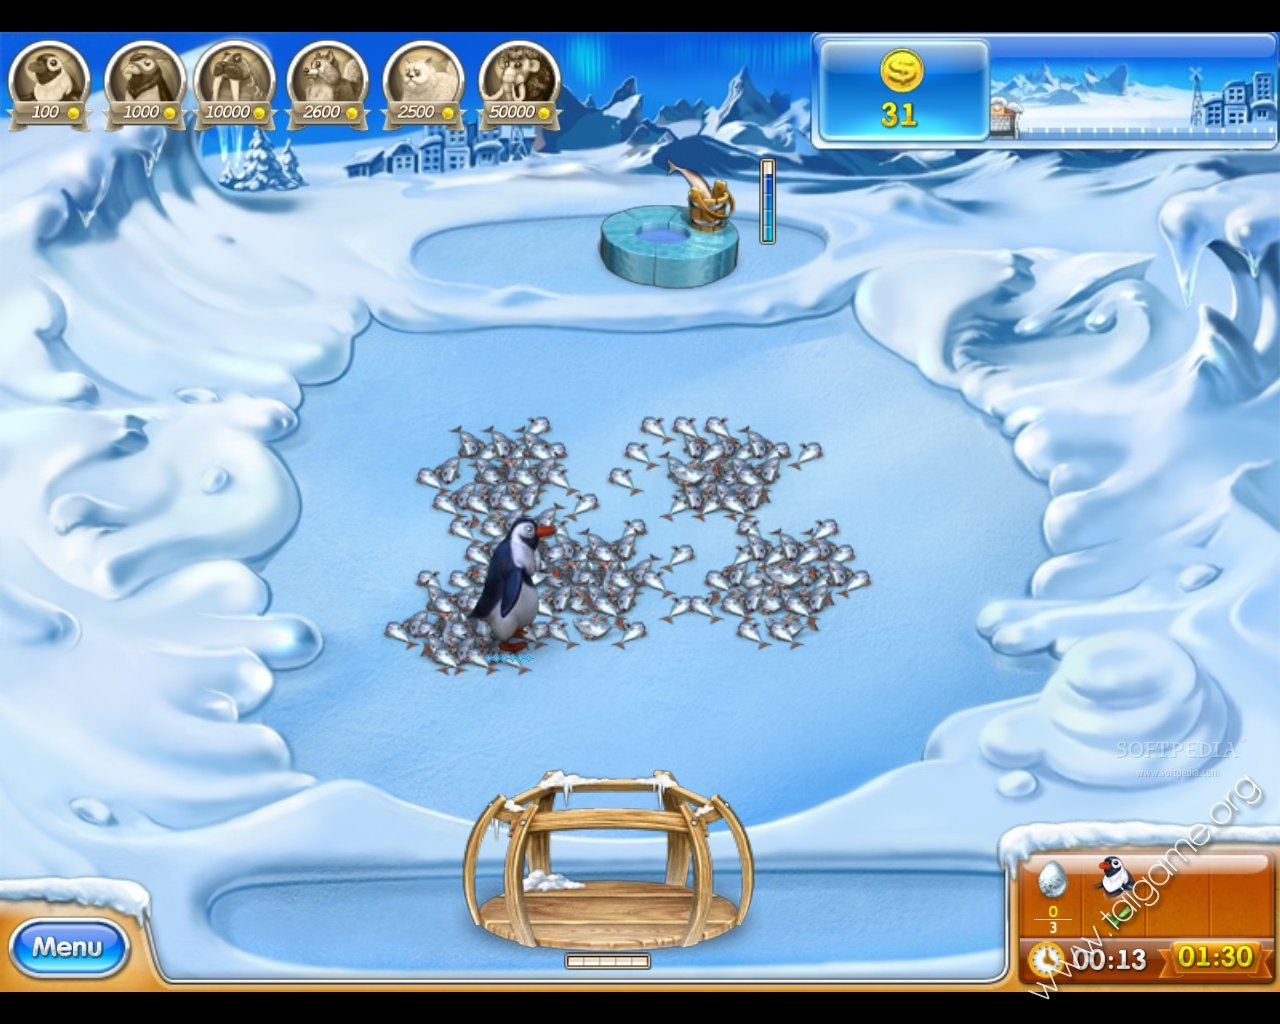 Free Download Crack For Farm Frenzy 3 Ice Age - newloadcopper